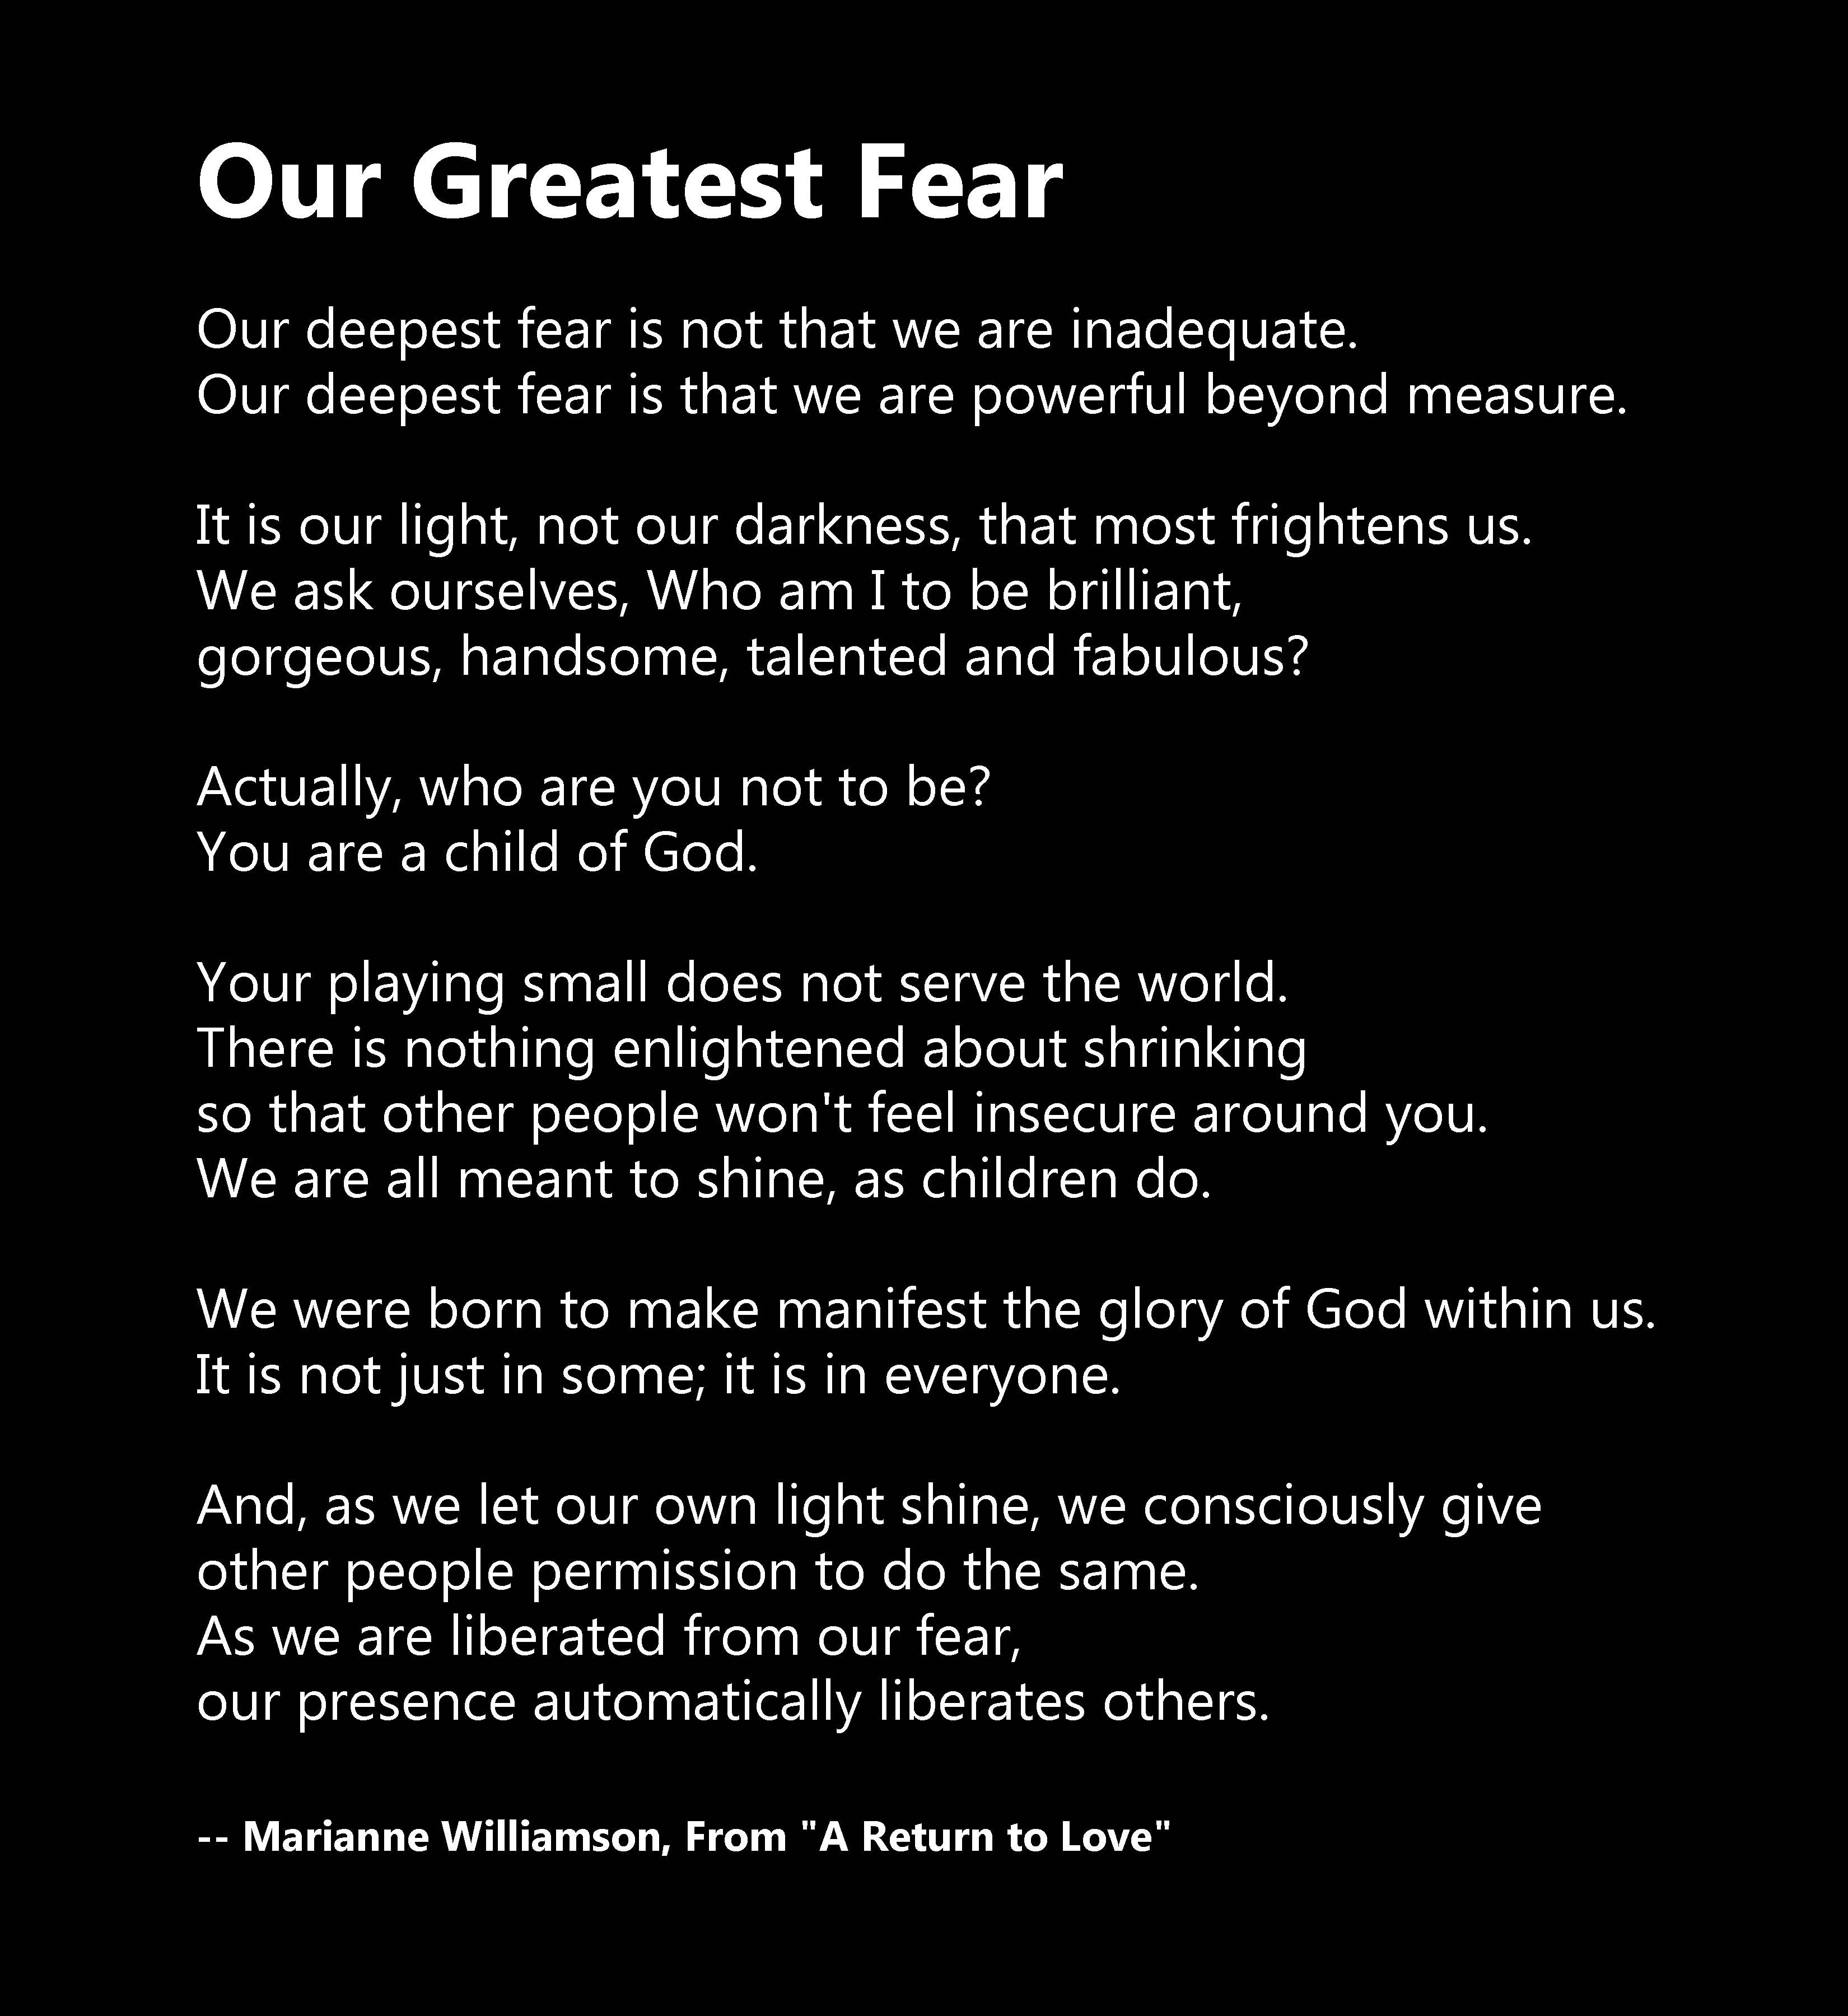 Our Greatest Fear By Marianne Williamson In The Film